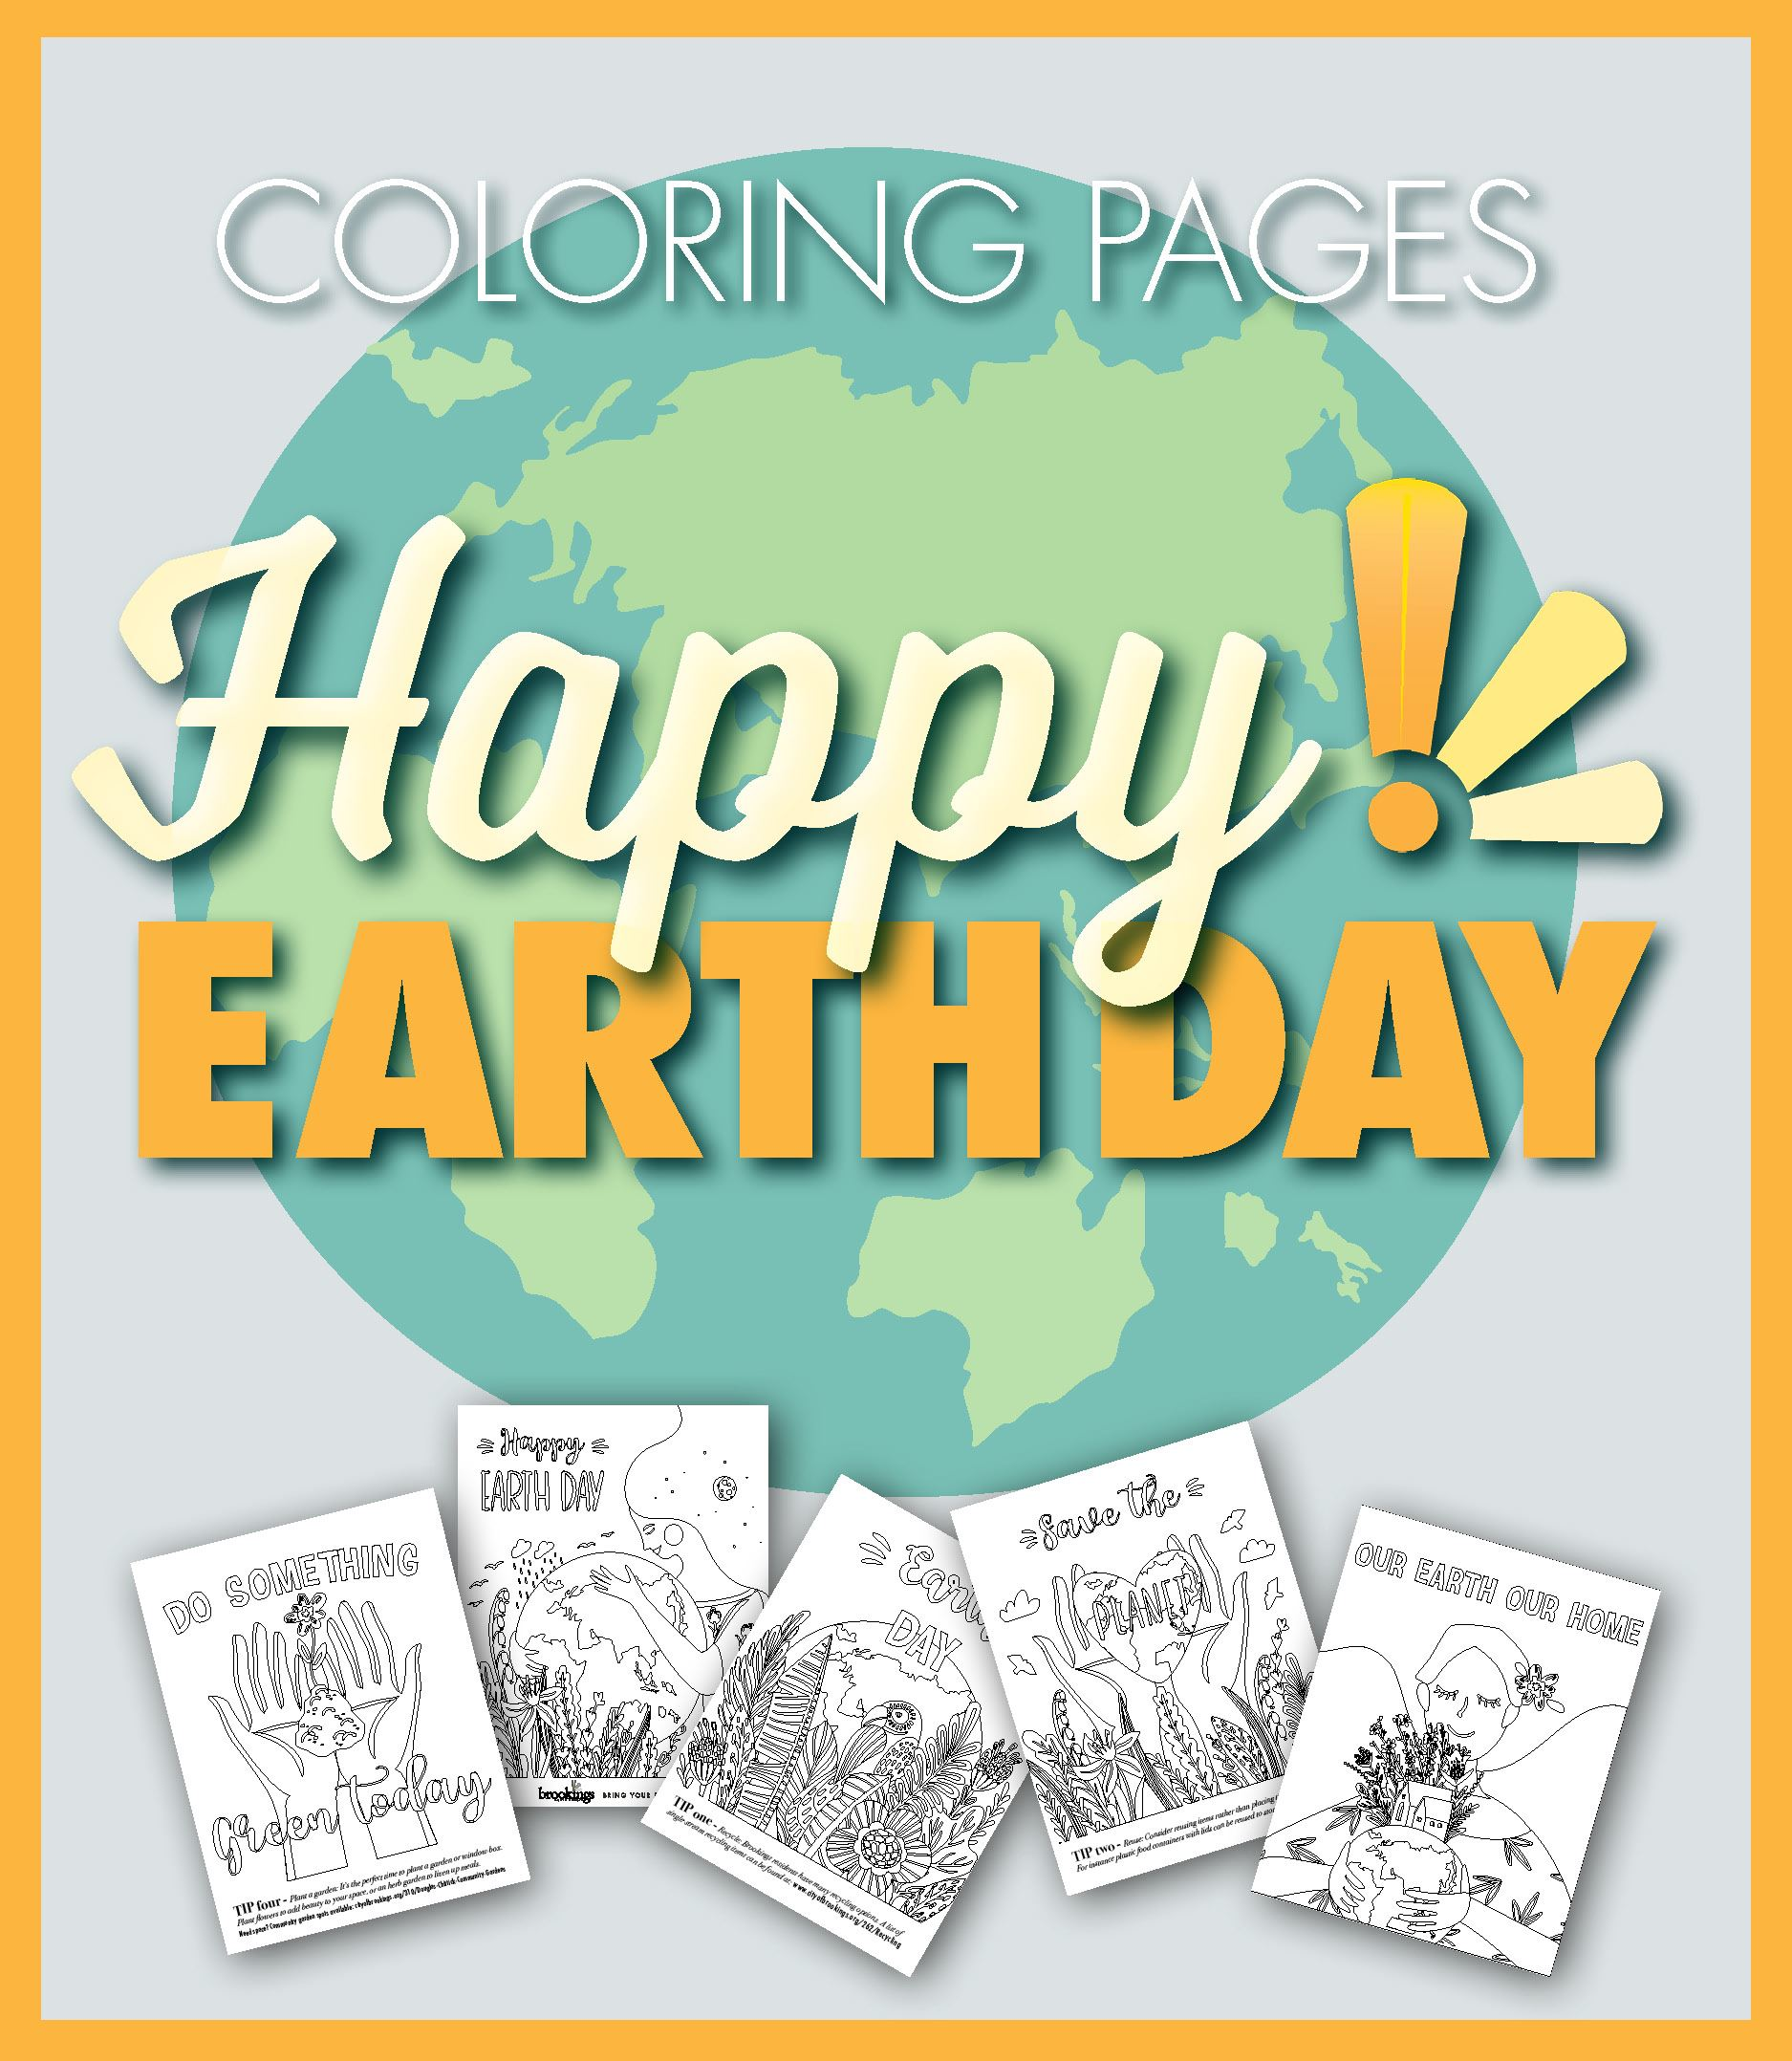 Newsflash Graphics 2020 - Earthday Coloring Pages